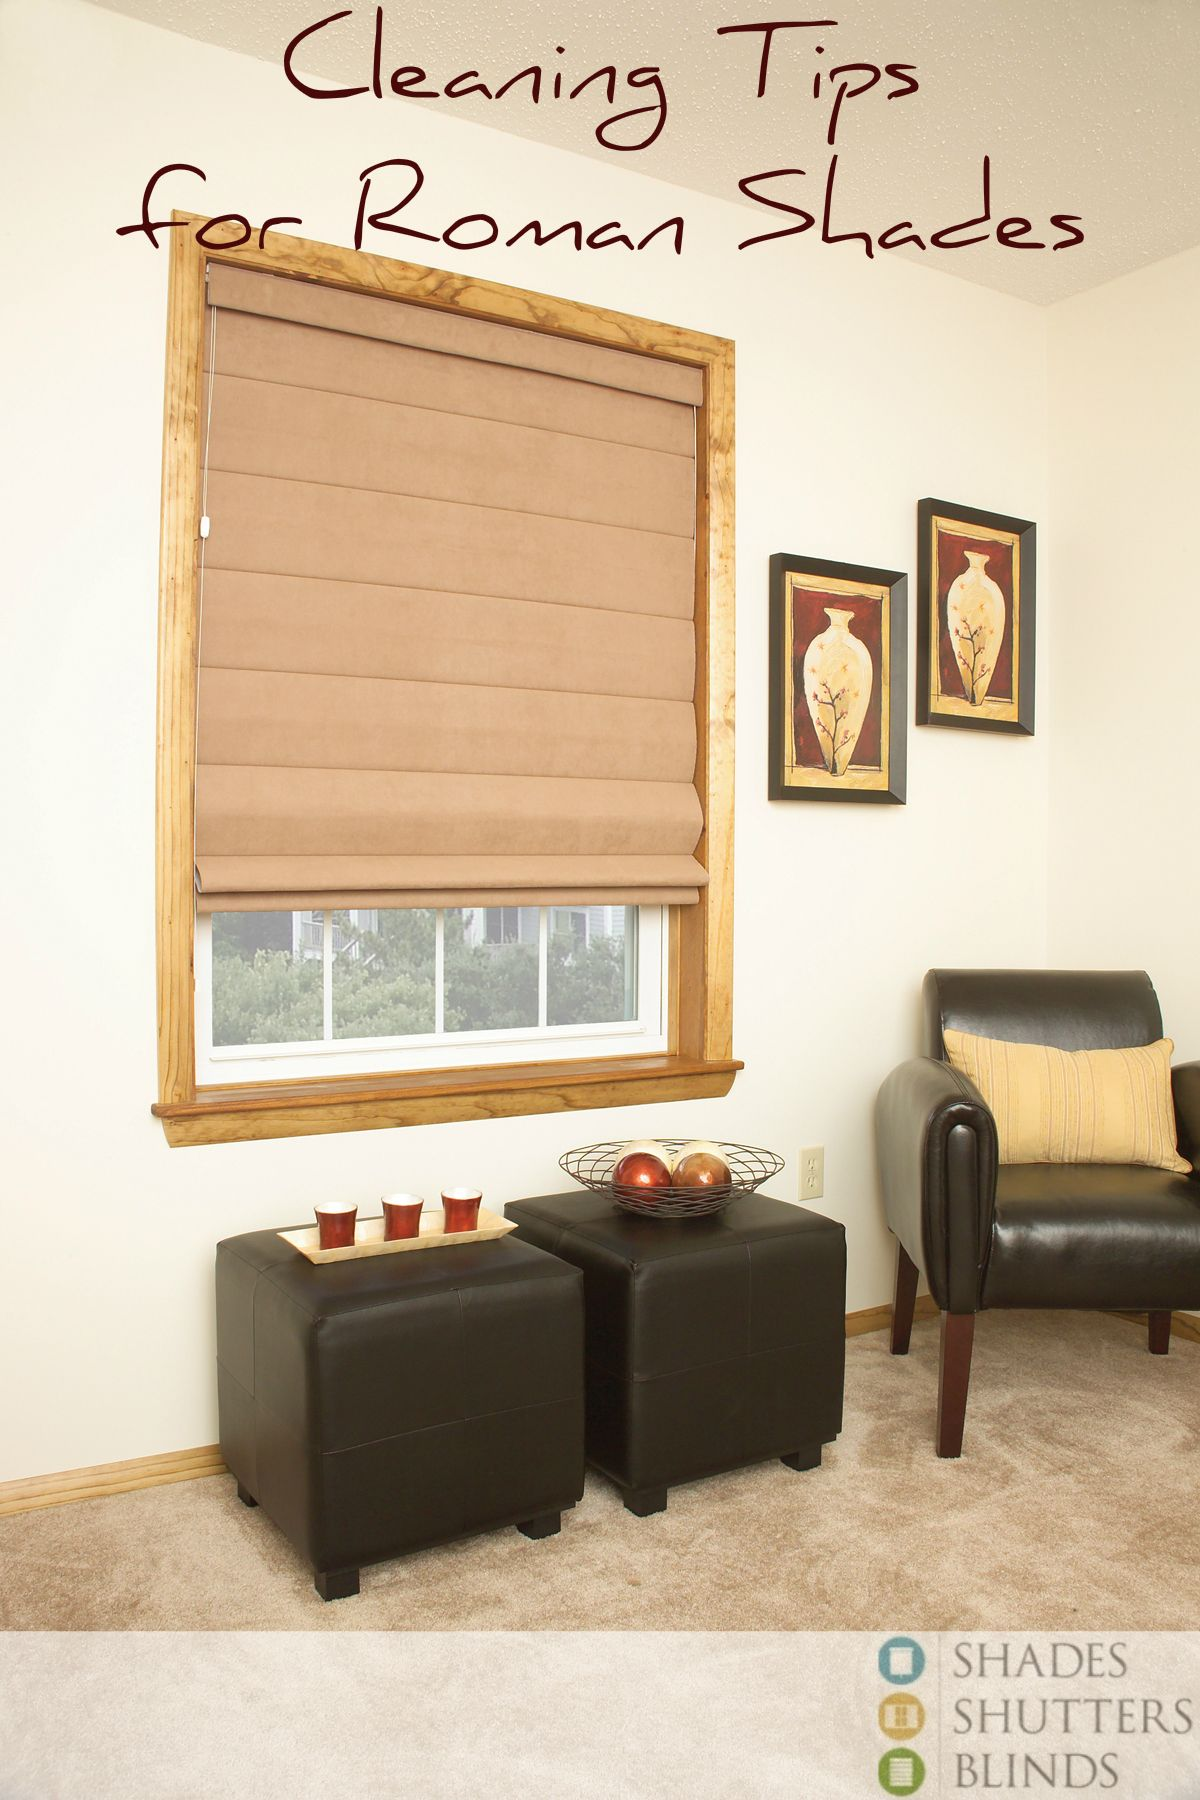 How To Clean Roman Shades Springcleaning Windowtreatments